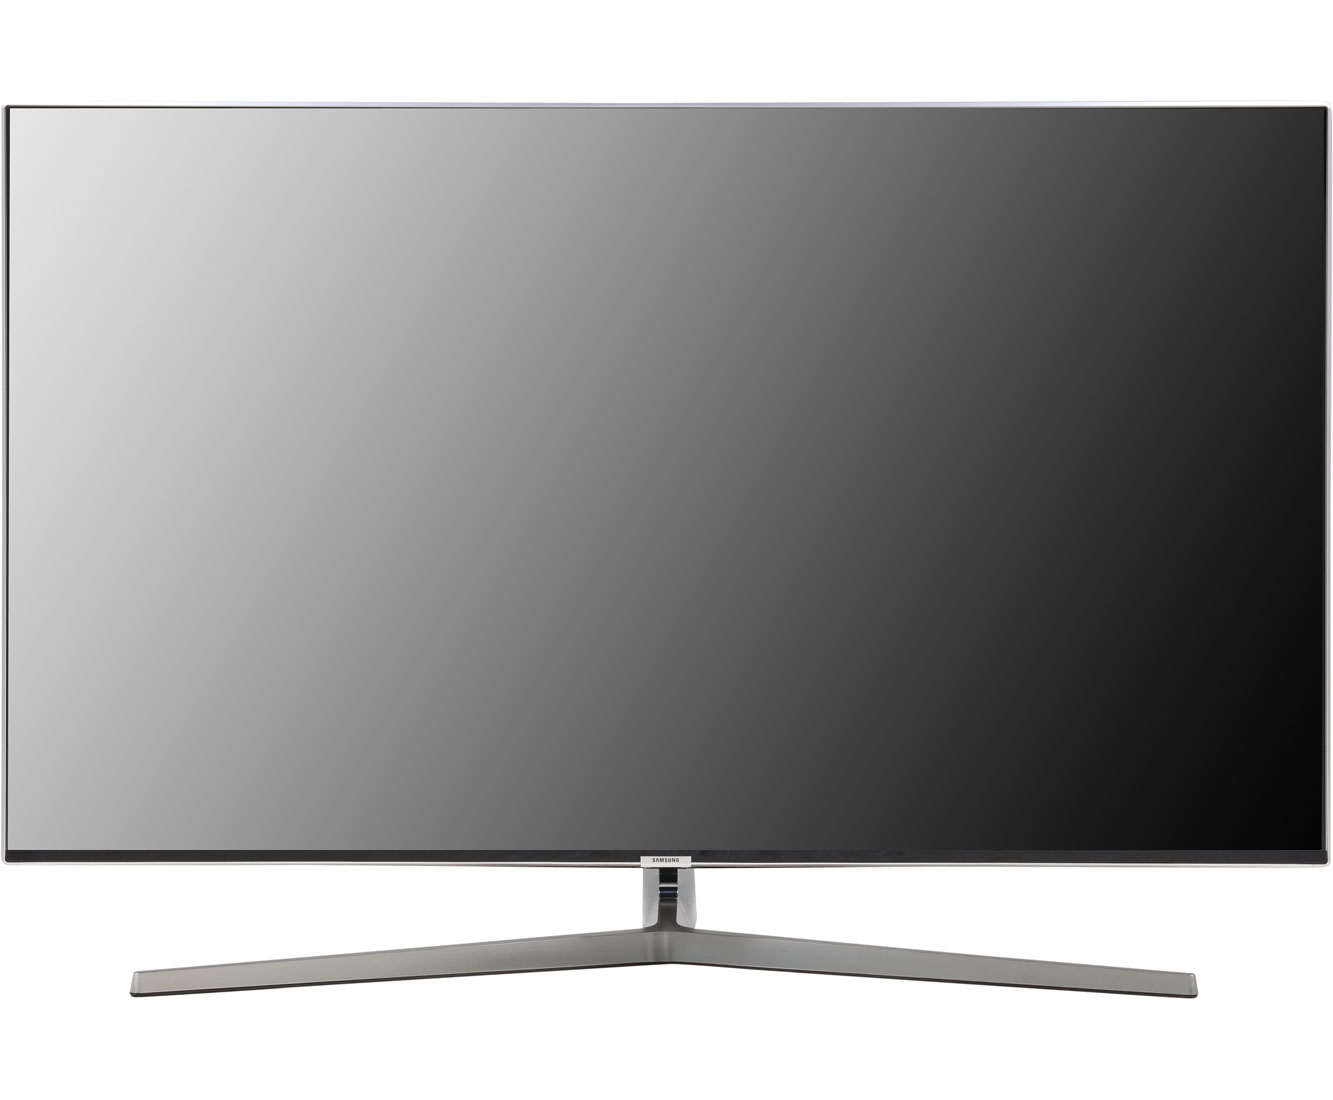 samsung ue65mu8009txzg 4k uhd led fernseher 163 cm 65 zoll silber ebay. Black Bedroom Furniture Sets. Home Design Ideas